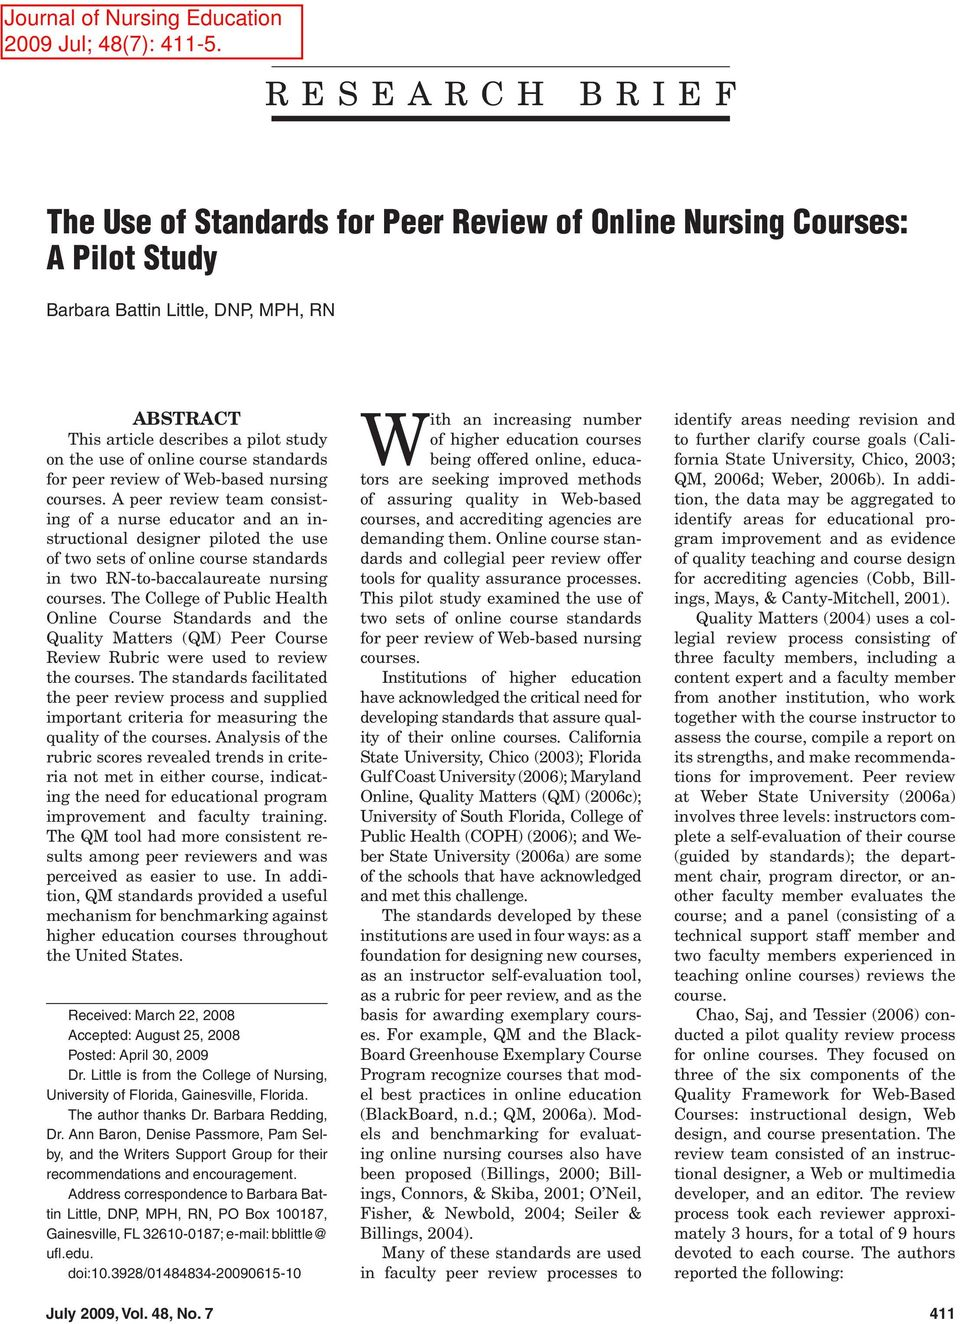 A peer review team consisting of a nurse educator and an instructional designer piloted the use of two sets of online course standards in two RN-to-baccalaureate nursing courses.